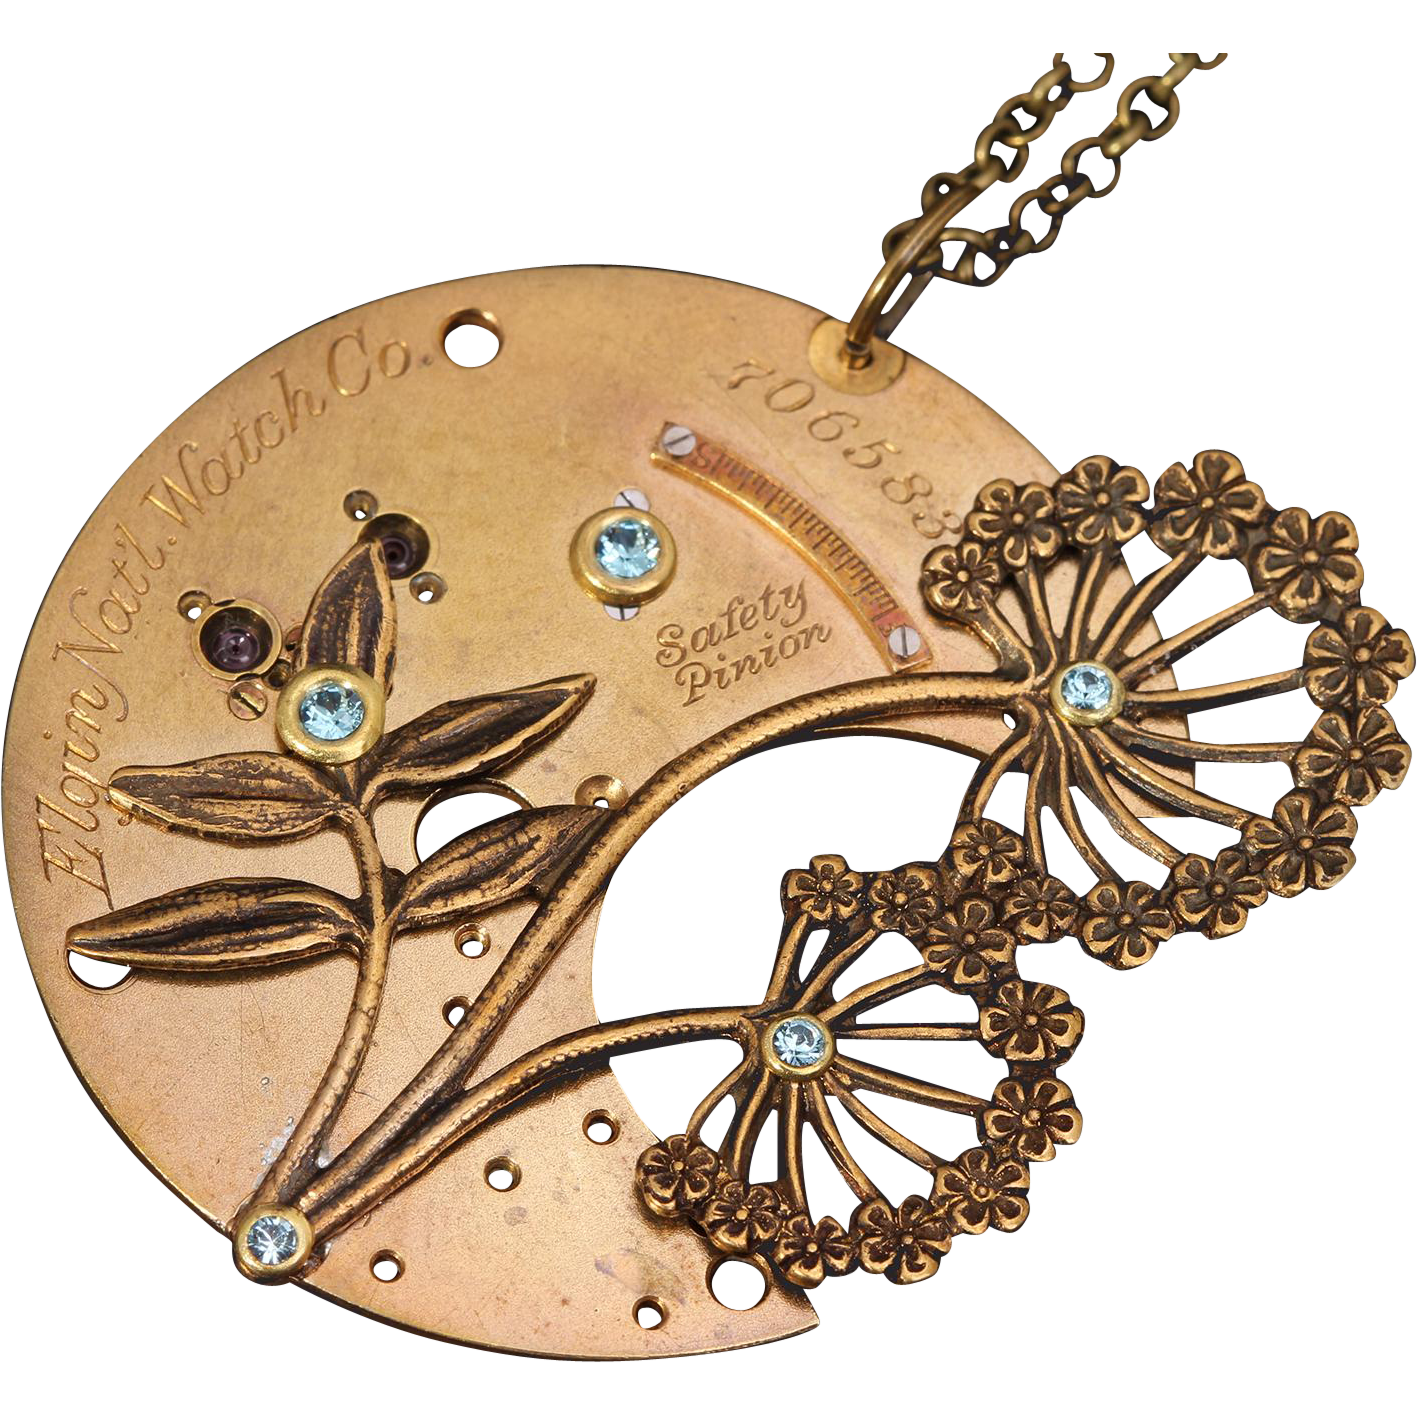 Steampunk Necklace Steampunk Jewelry Dandelion Necklace Flower Necklace